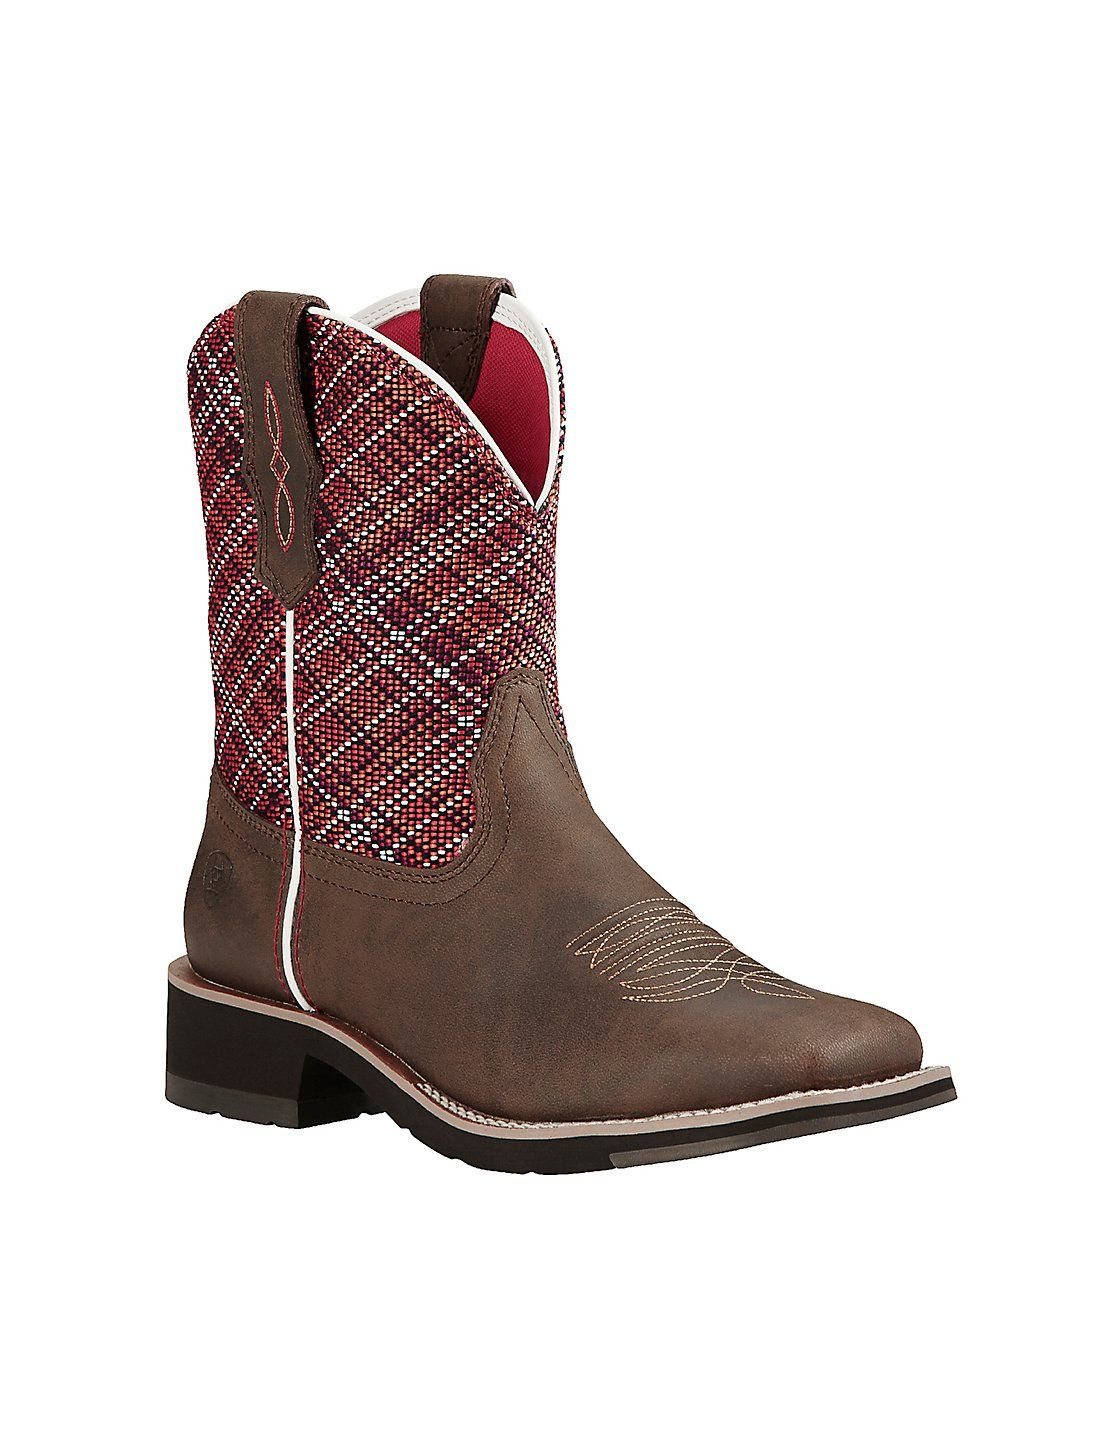 f6ad93910f7 Ariat Fatbaby Heritage Women's Brown with Red Upper Square Toe ...